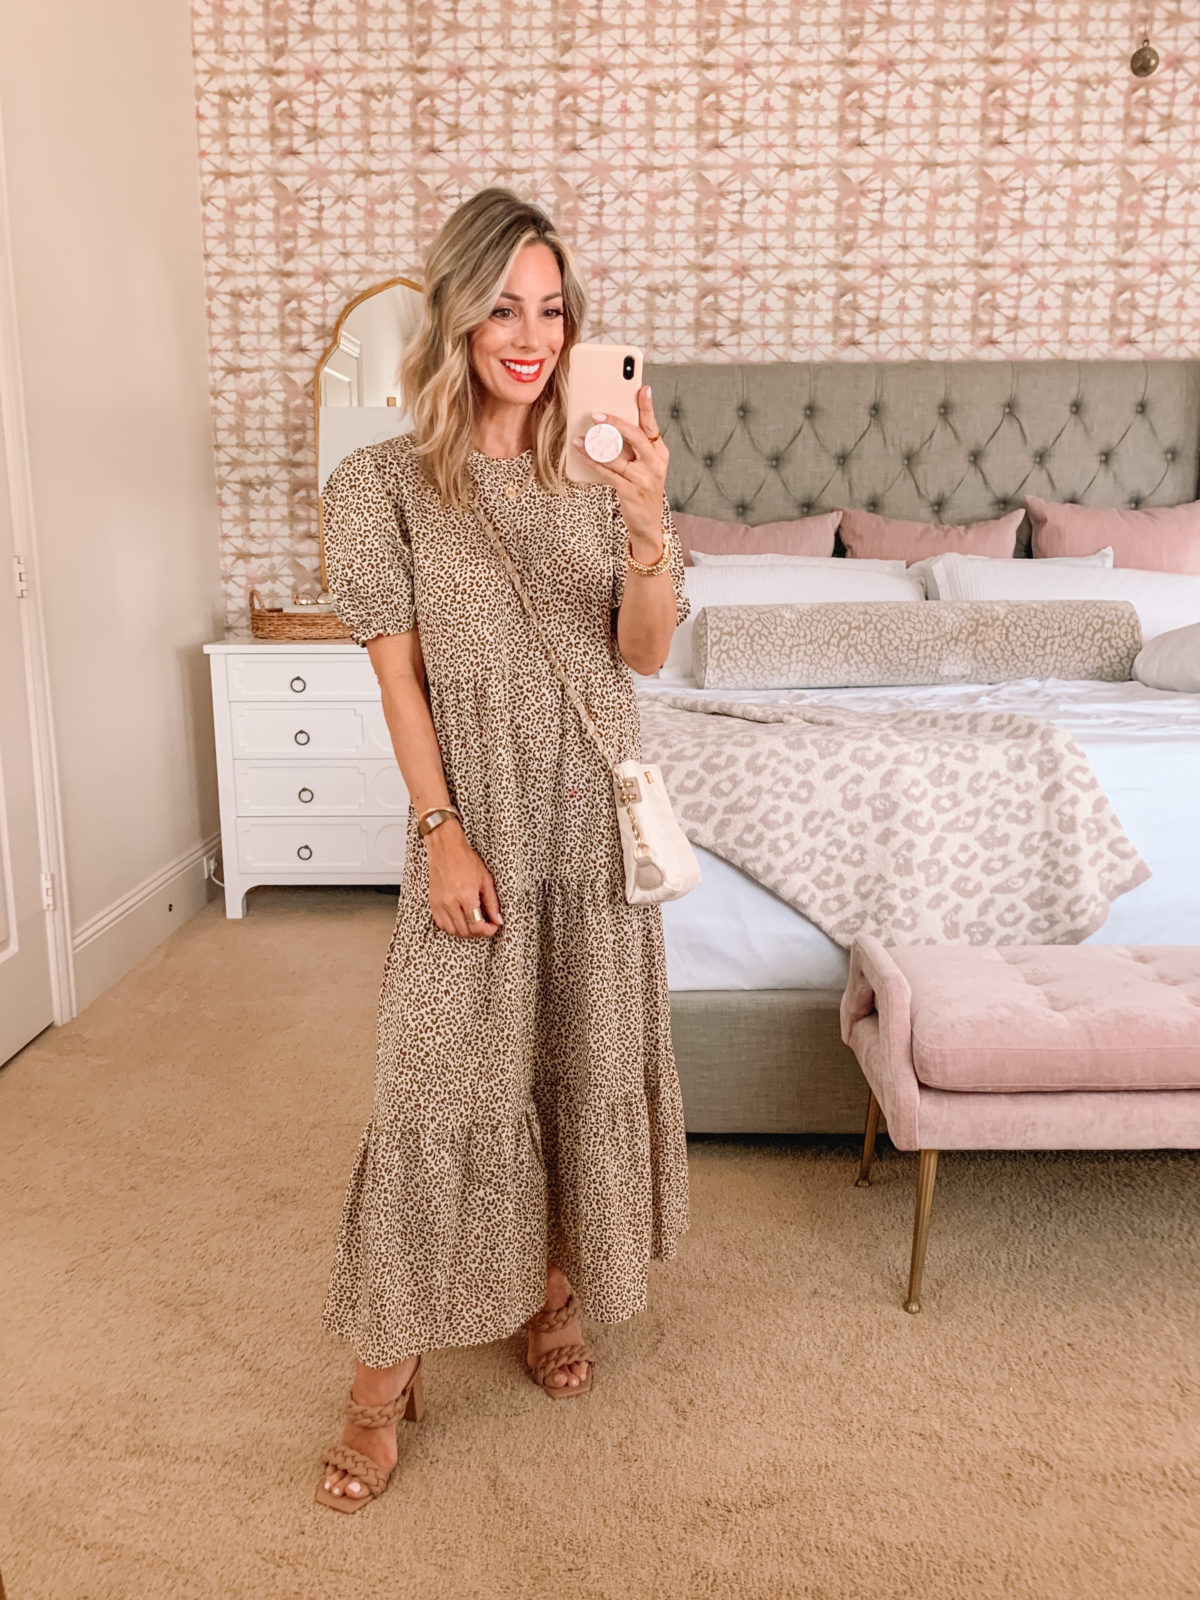 Amazon Fashion Faves, Leopard Dress and Sandals with Crossbody